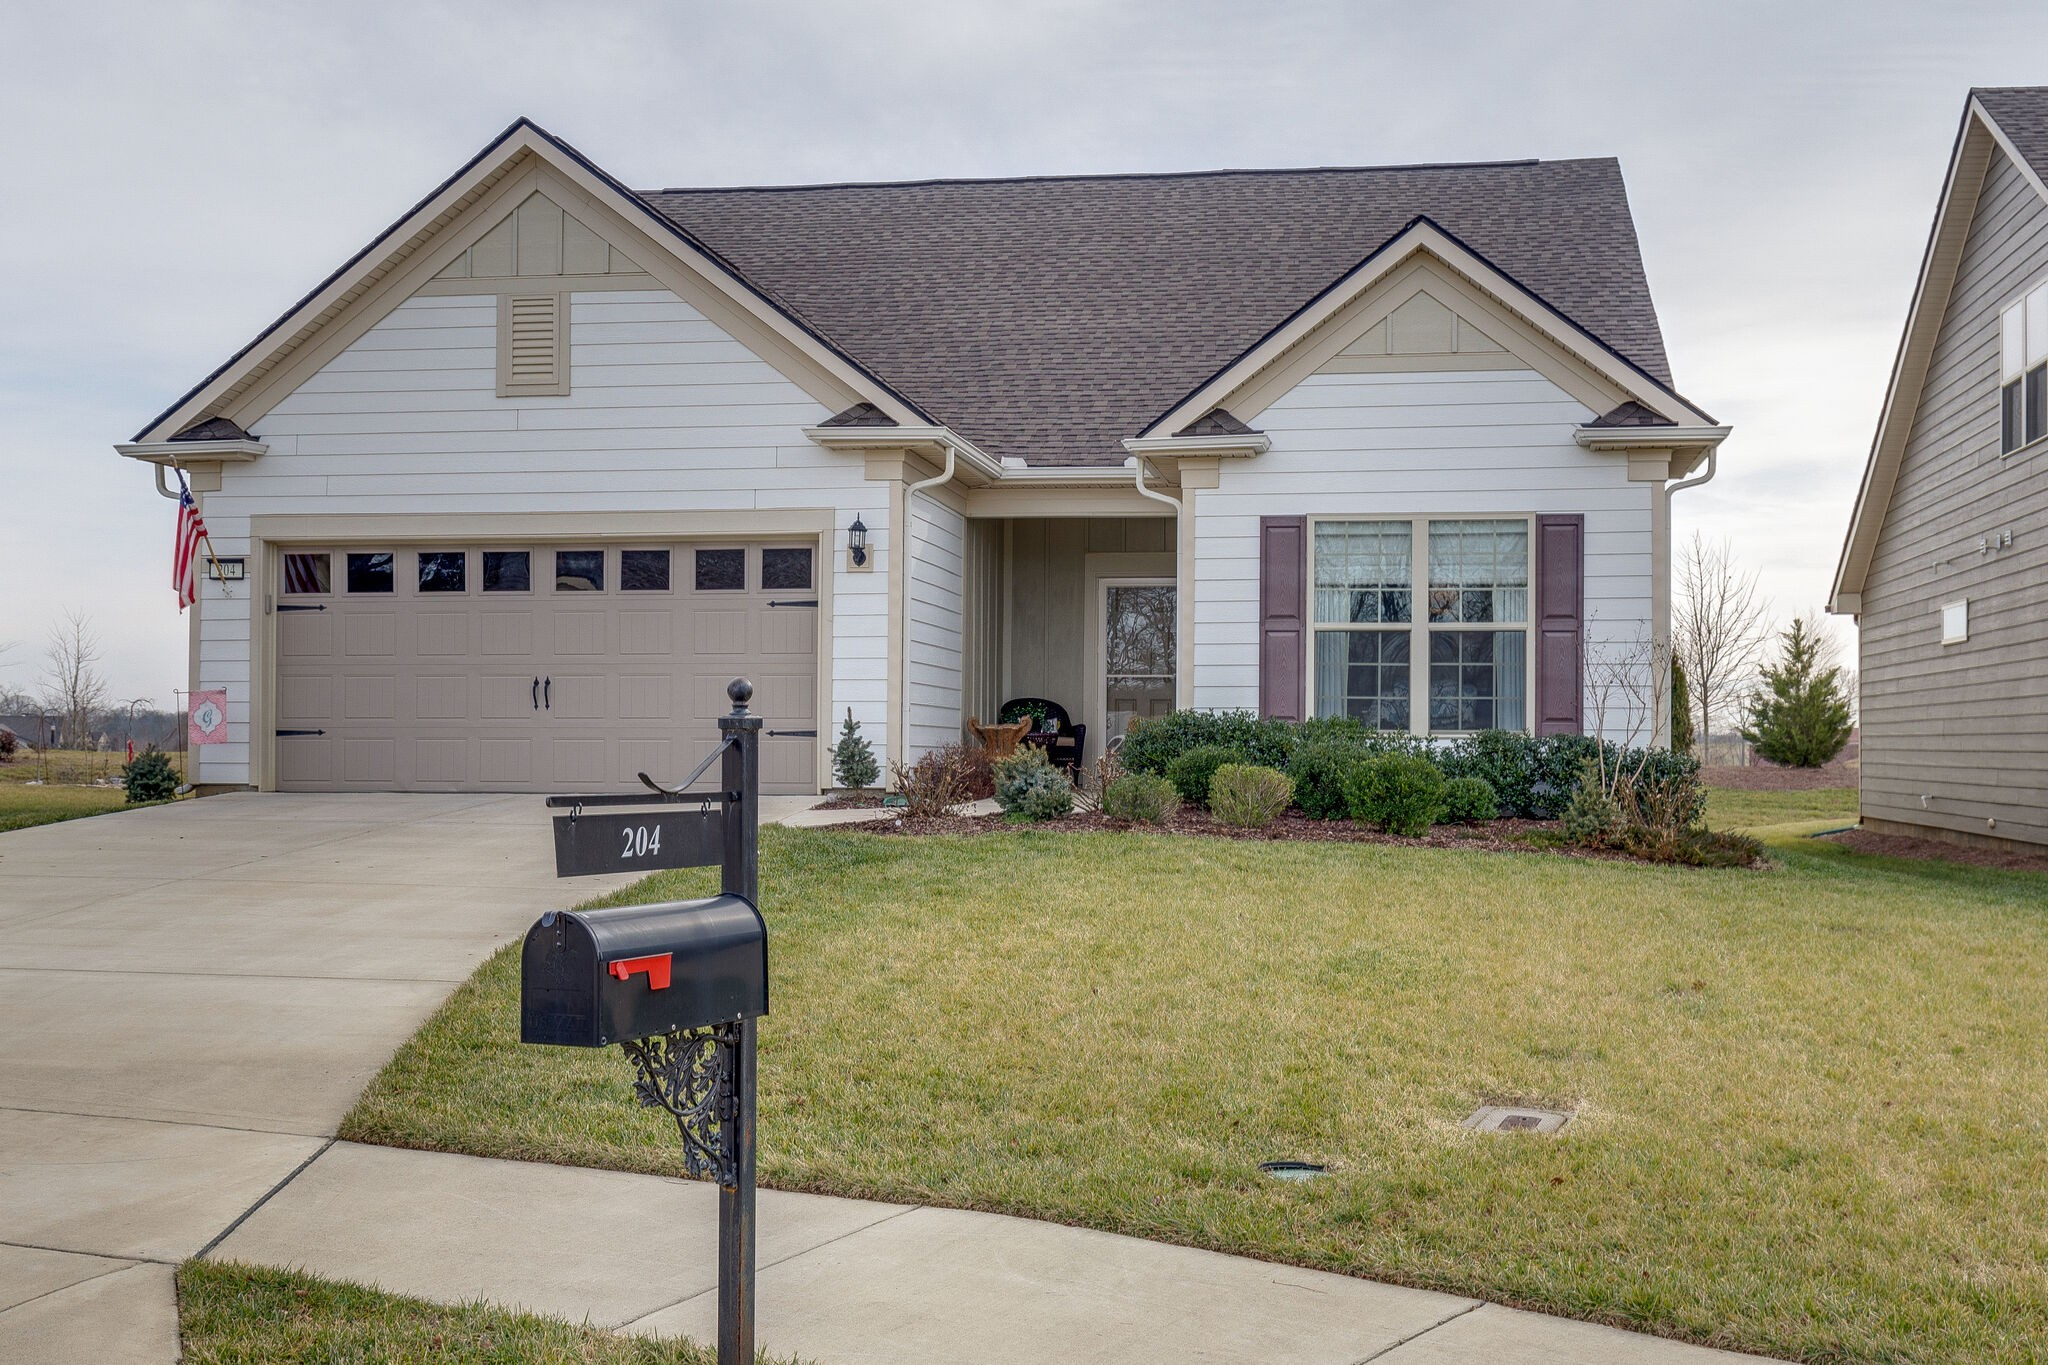 Come home to Southern Springs!  This Abbeyville floor plan offers 3 bedrooms,3 full baths, extended garage, Open floor plan,fireplace,large windows for tons of natural light, upstairs complete with bed-bath- and media room.Tons of upgrades and professionally decorated by one of the areas top designers.    You will not want to miss out on this stunning home located in a 55+ community.   Call today for your showing.